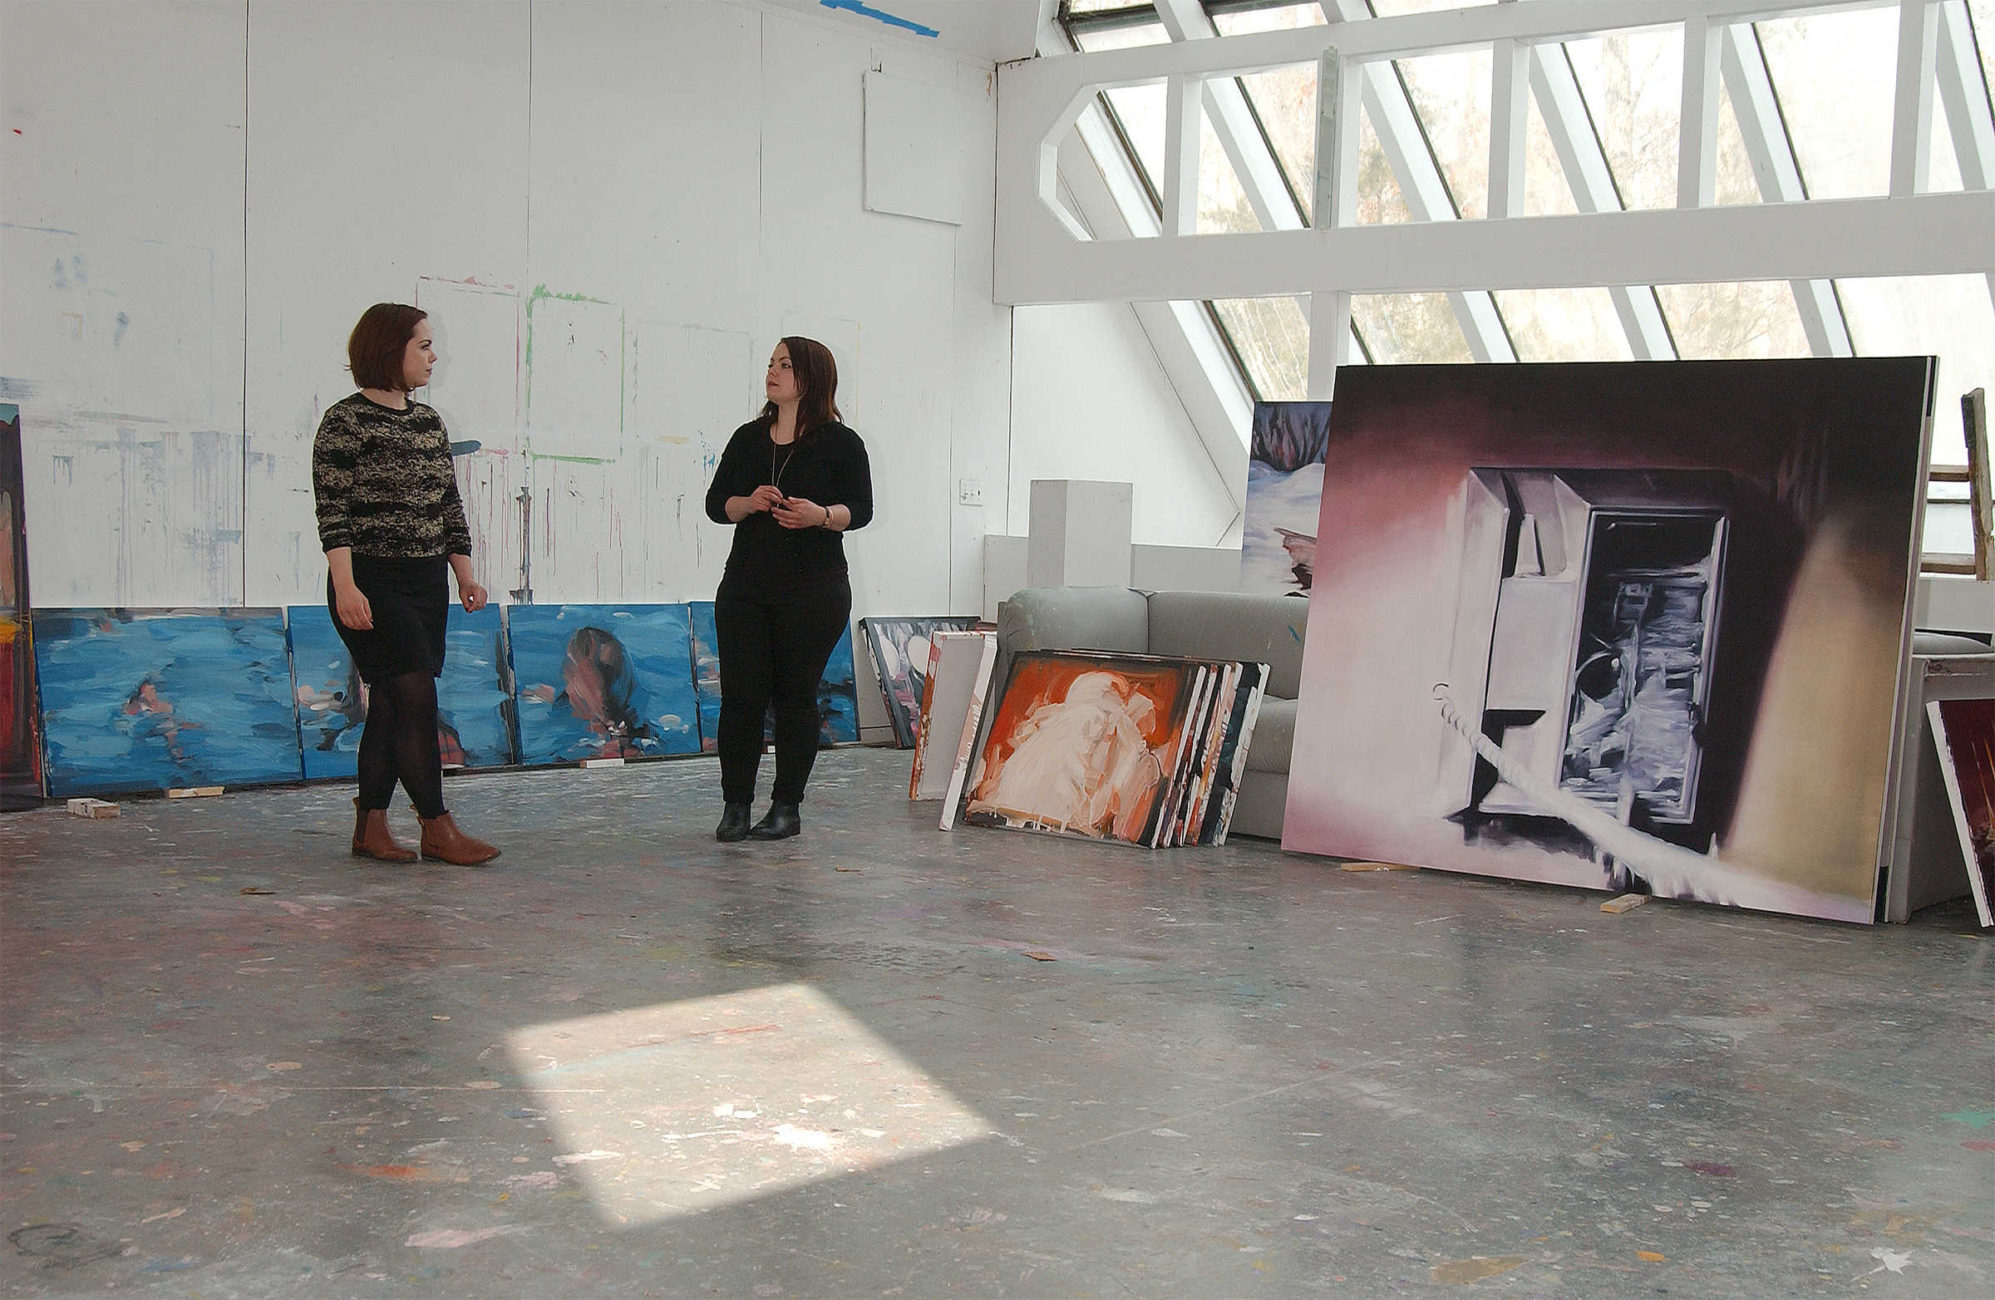 Artists and twin sisters Rachel (left) and Laura (Right) Lancaster during their artist in residency at the former home and art studio of Elaine de Kooning in East Hampton, NY.